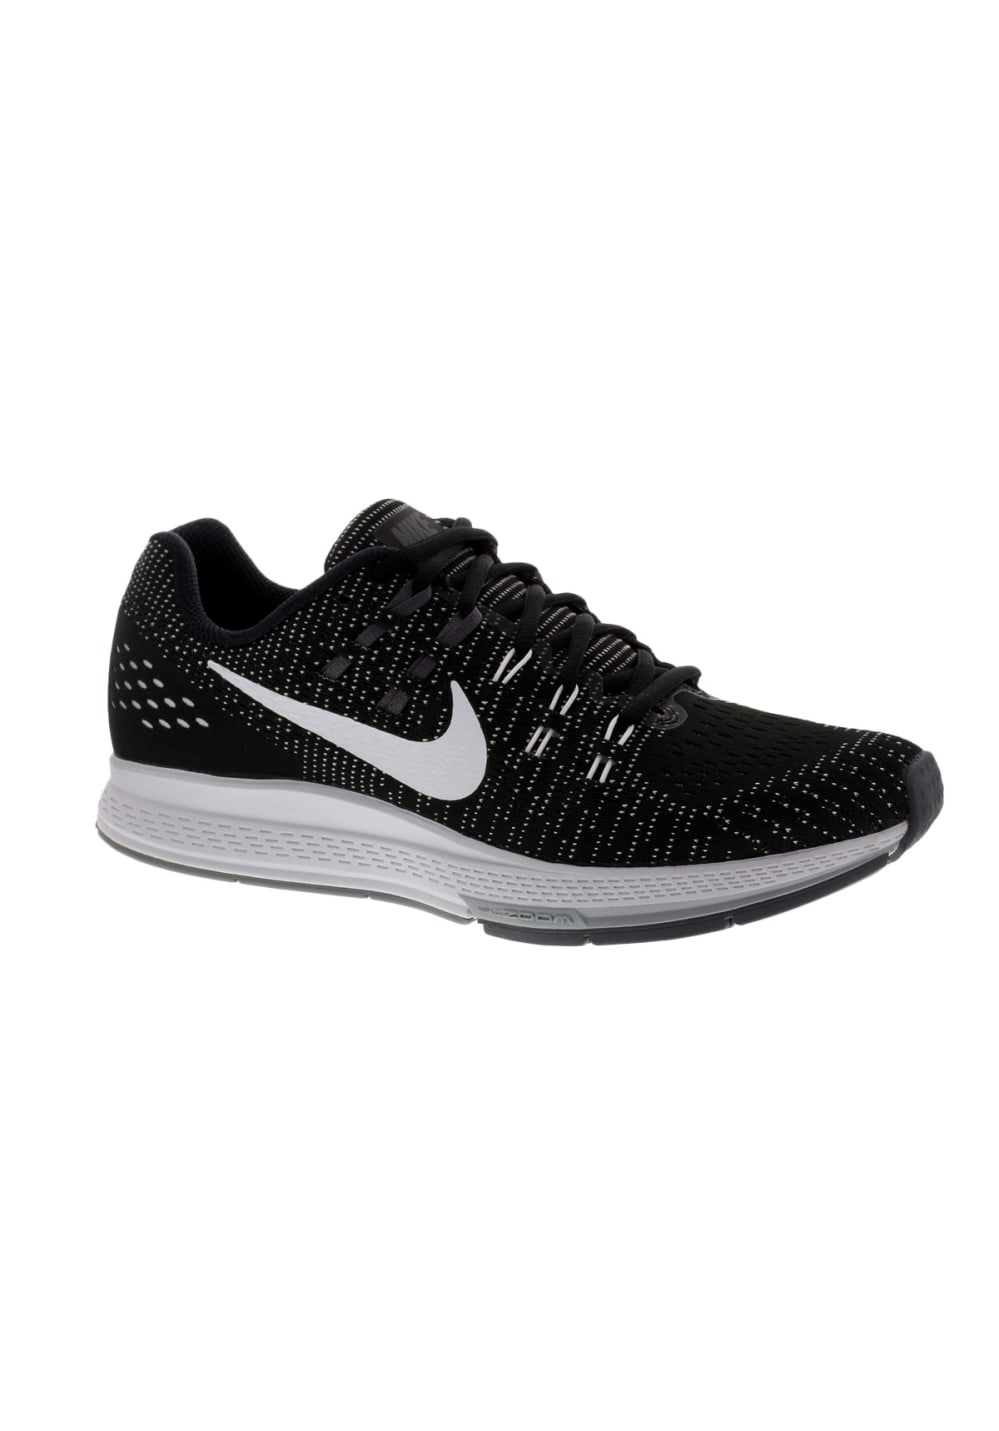 c66fb7aaf3cf6d Nike Air Zoom Structure 19 - Running shoes for Women - Black